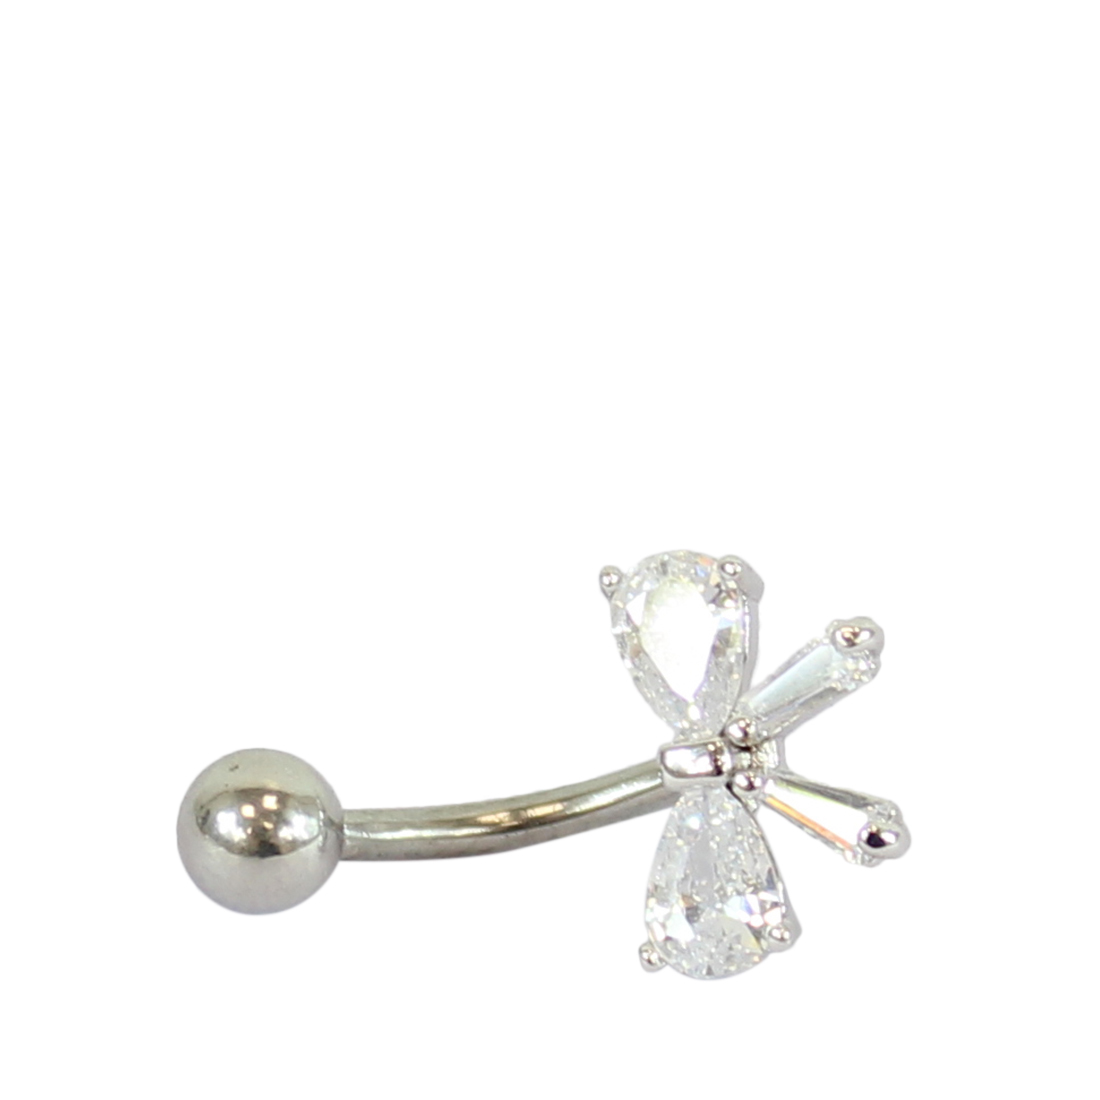 Belly button ring with bow